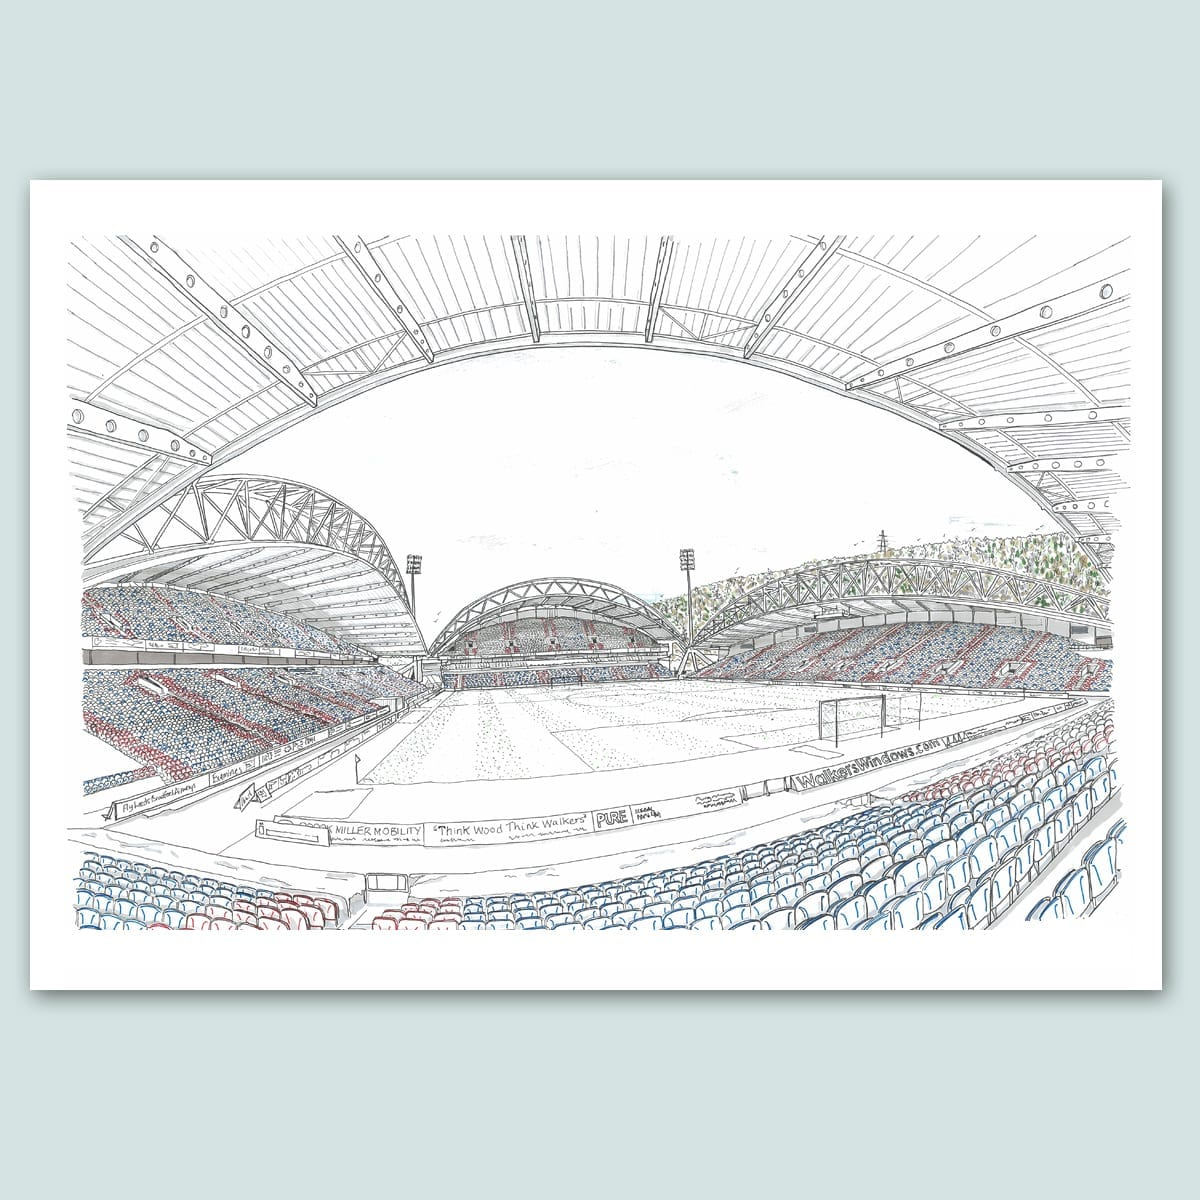 Huddersfield Town Football Stadium Limited Edition Print